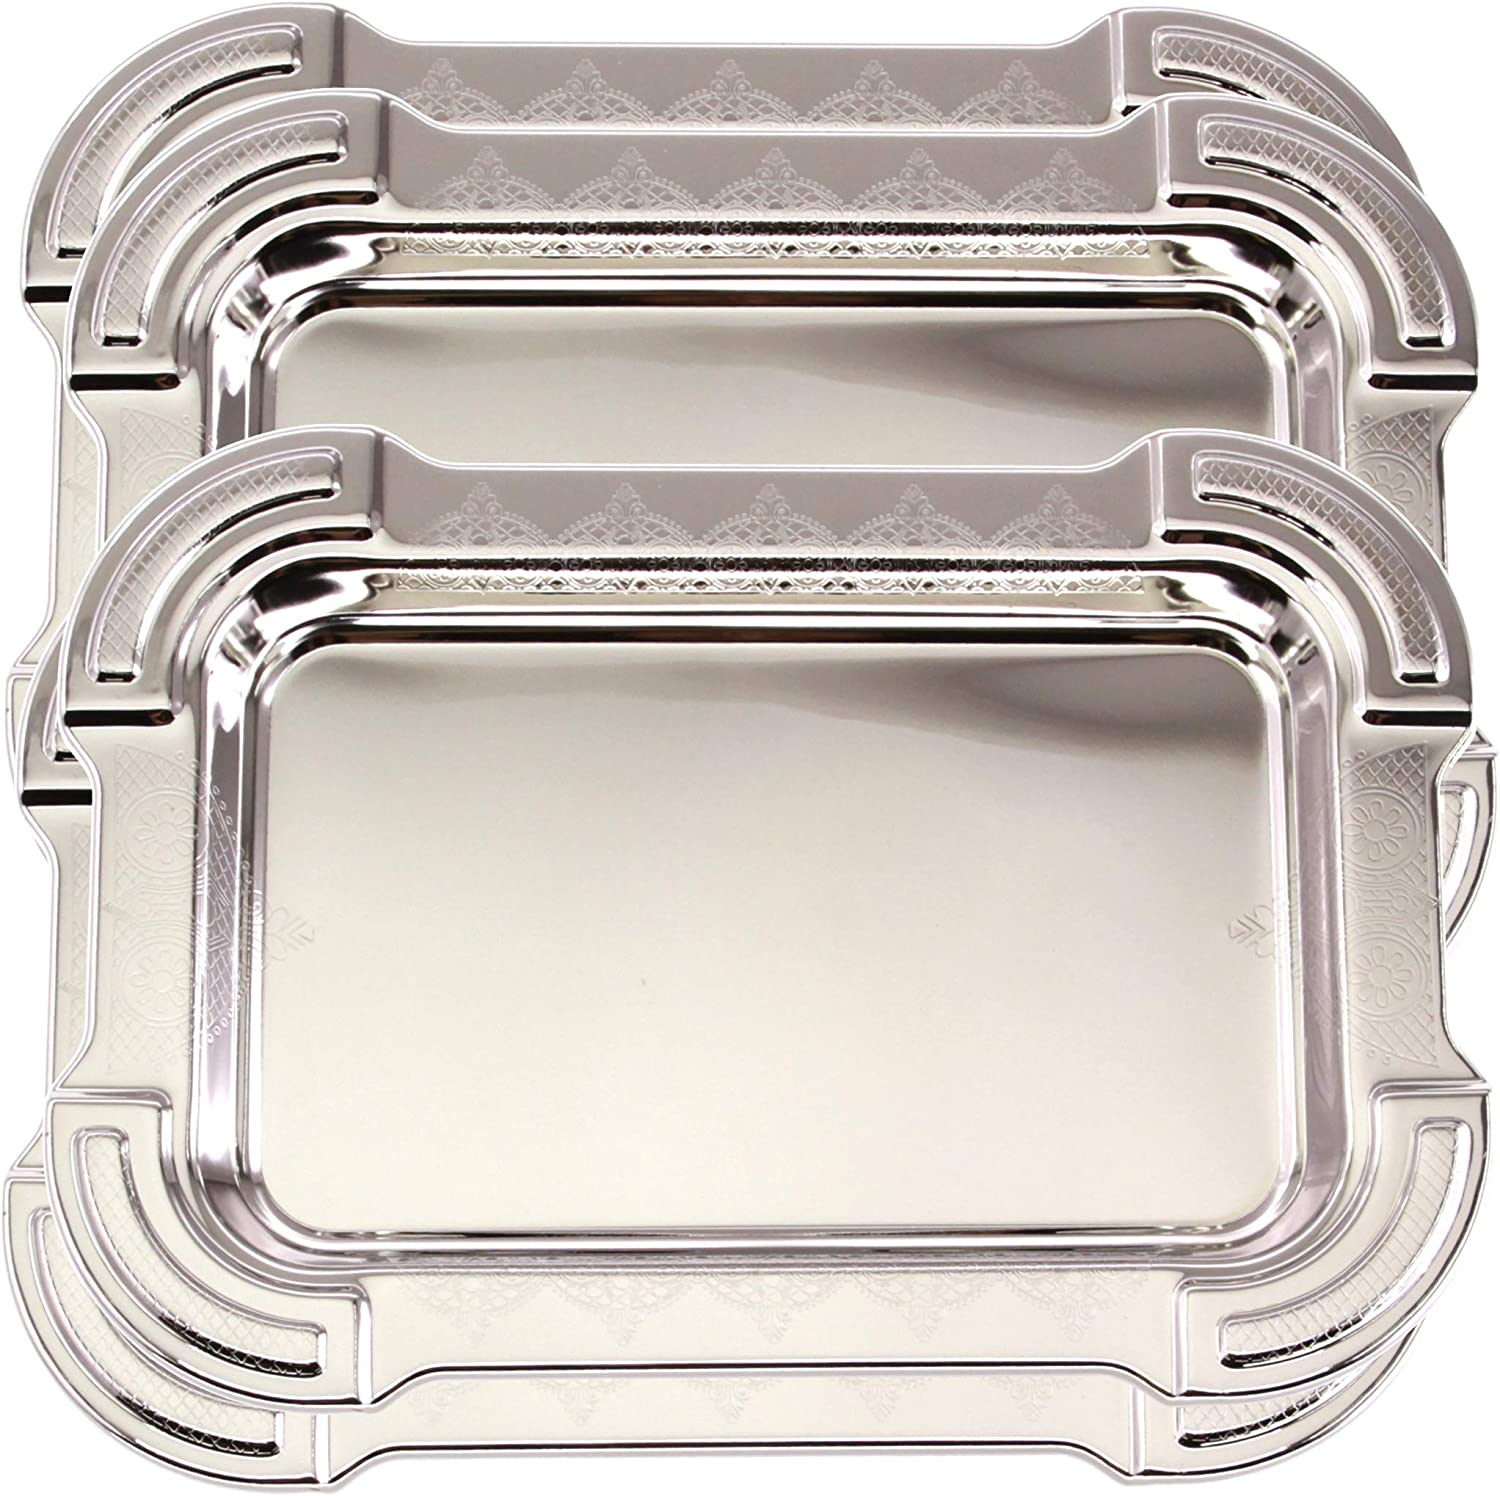 Maro Megastore (Pack of 4) 13.4 inch x 9.4 inch Oblong Chrome Plated Mirror Silver Serving Tray Stylish Design Floral Engraved Edge Decorative Party Birthday Wedding Buffet Wine Platter Plate CC-1152